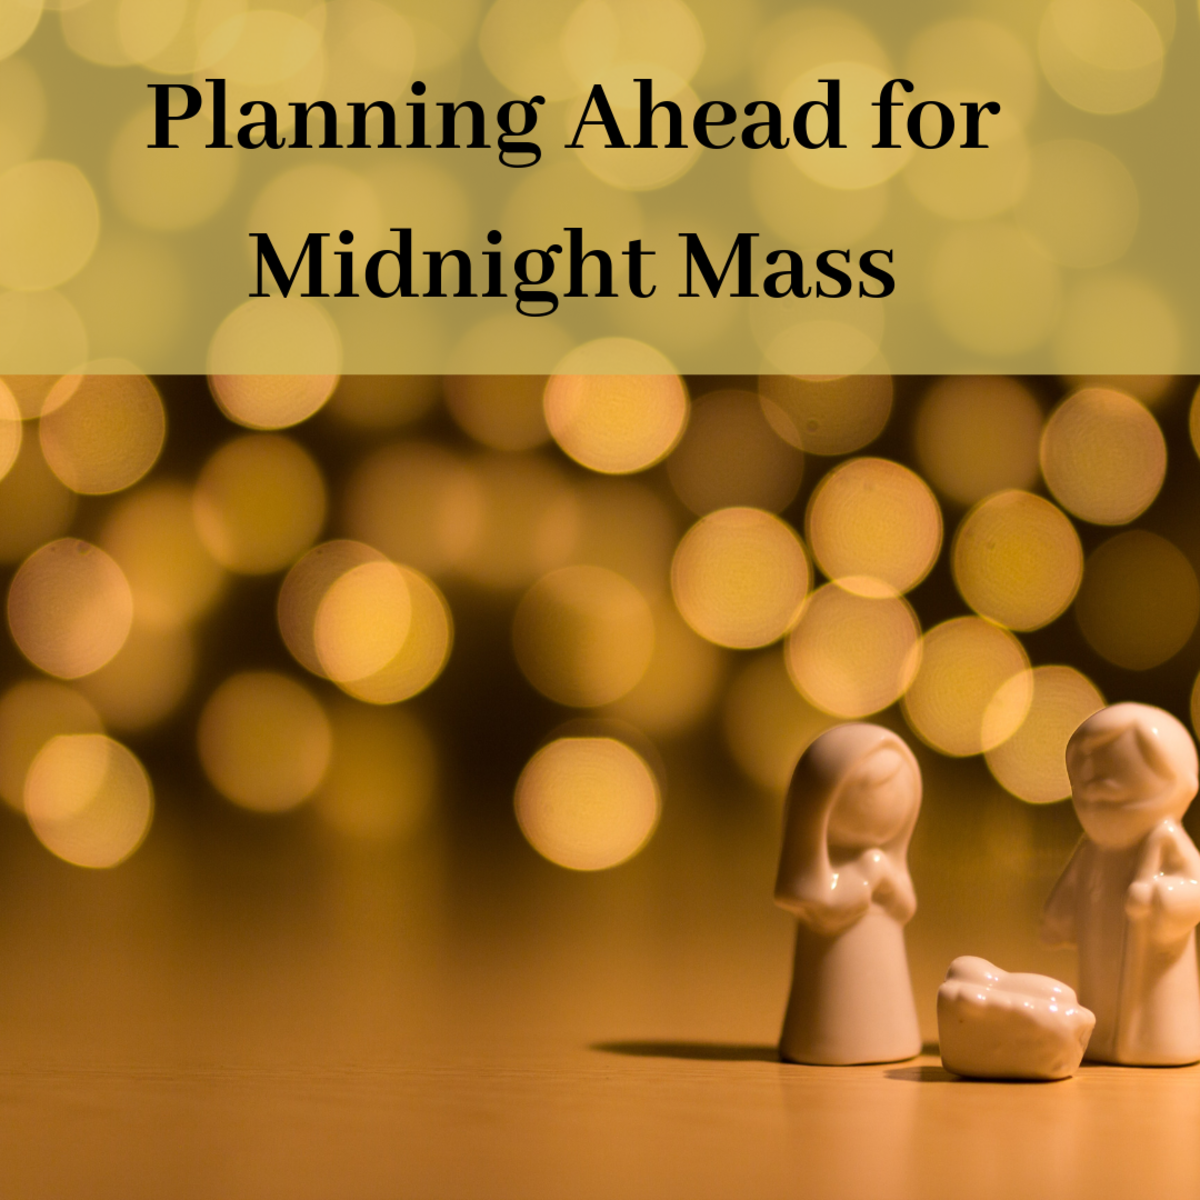 These tips will help you make the most of your midnight mass experience.